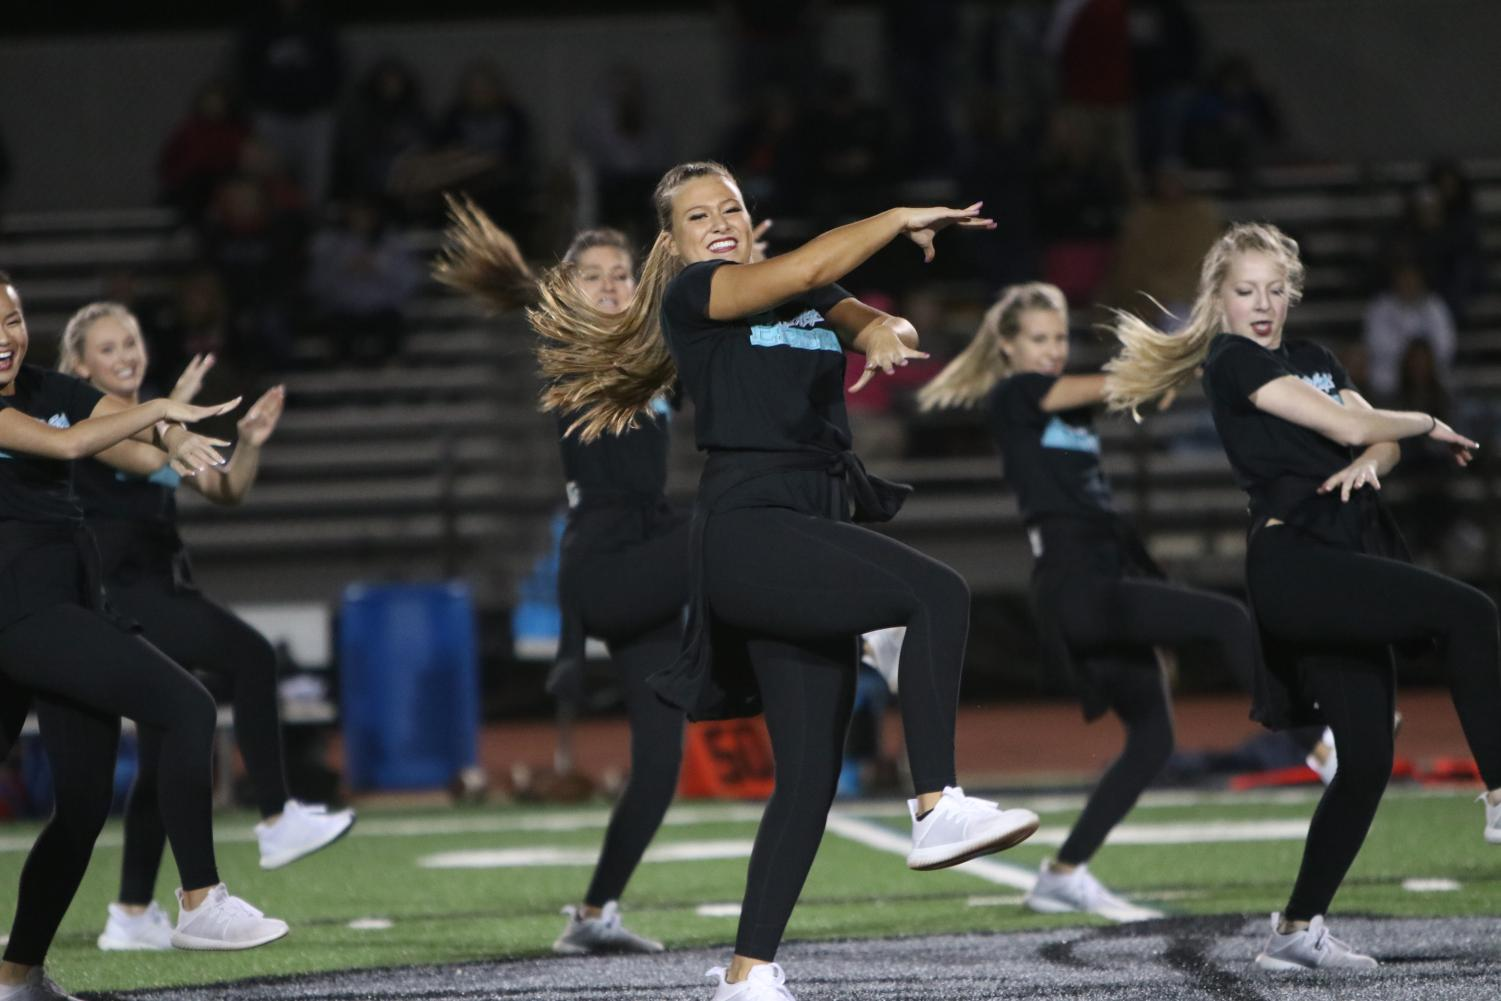 Alongside+both+JV+and+varsity+escadrille%2C+Payton+Brown%2C+sophomore%2C+performs+on+Friday%2C+Sept.+28+during+the+halftime+performance+of+the+varsity+football+game+against+the+Parkway+South+Patriots.+The+Lancers+ended+up+defeating+the+Patriots+19-8.+%22It%27s+a+little+bit+nerve-racking+%5Bto+dance+at+halftime%5D+at+first%2C+but+once+I%27m+out+there+with+everyone+it%27s+really+fun+because+we+are+all+really+close+as+a+team%2C%22+Brown+said.